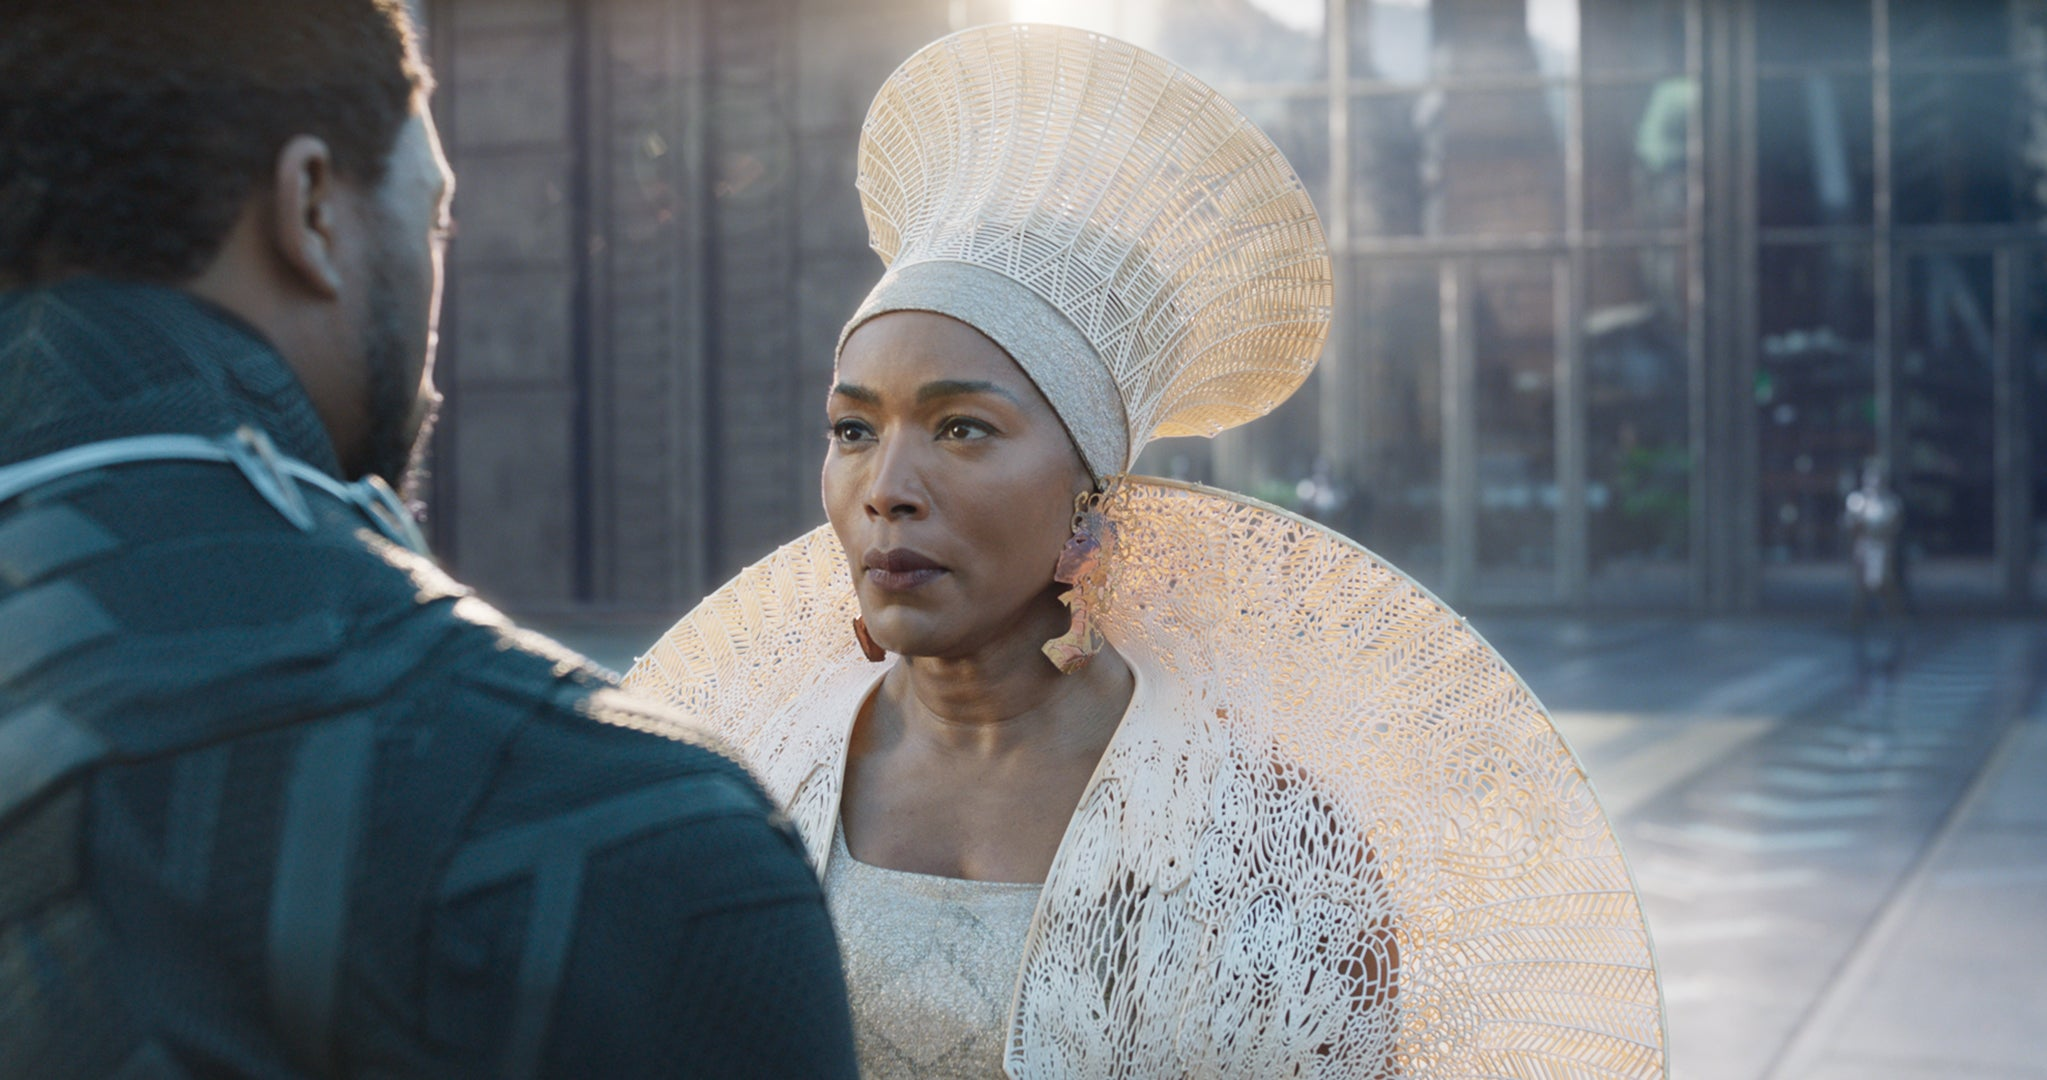 Black Panther's Costume Designer Breaks Down The Real World Inspiration Behind Key Looks